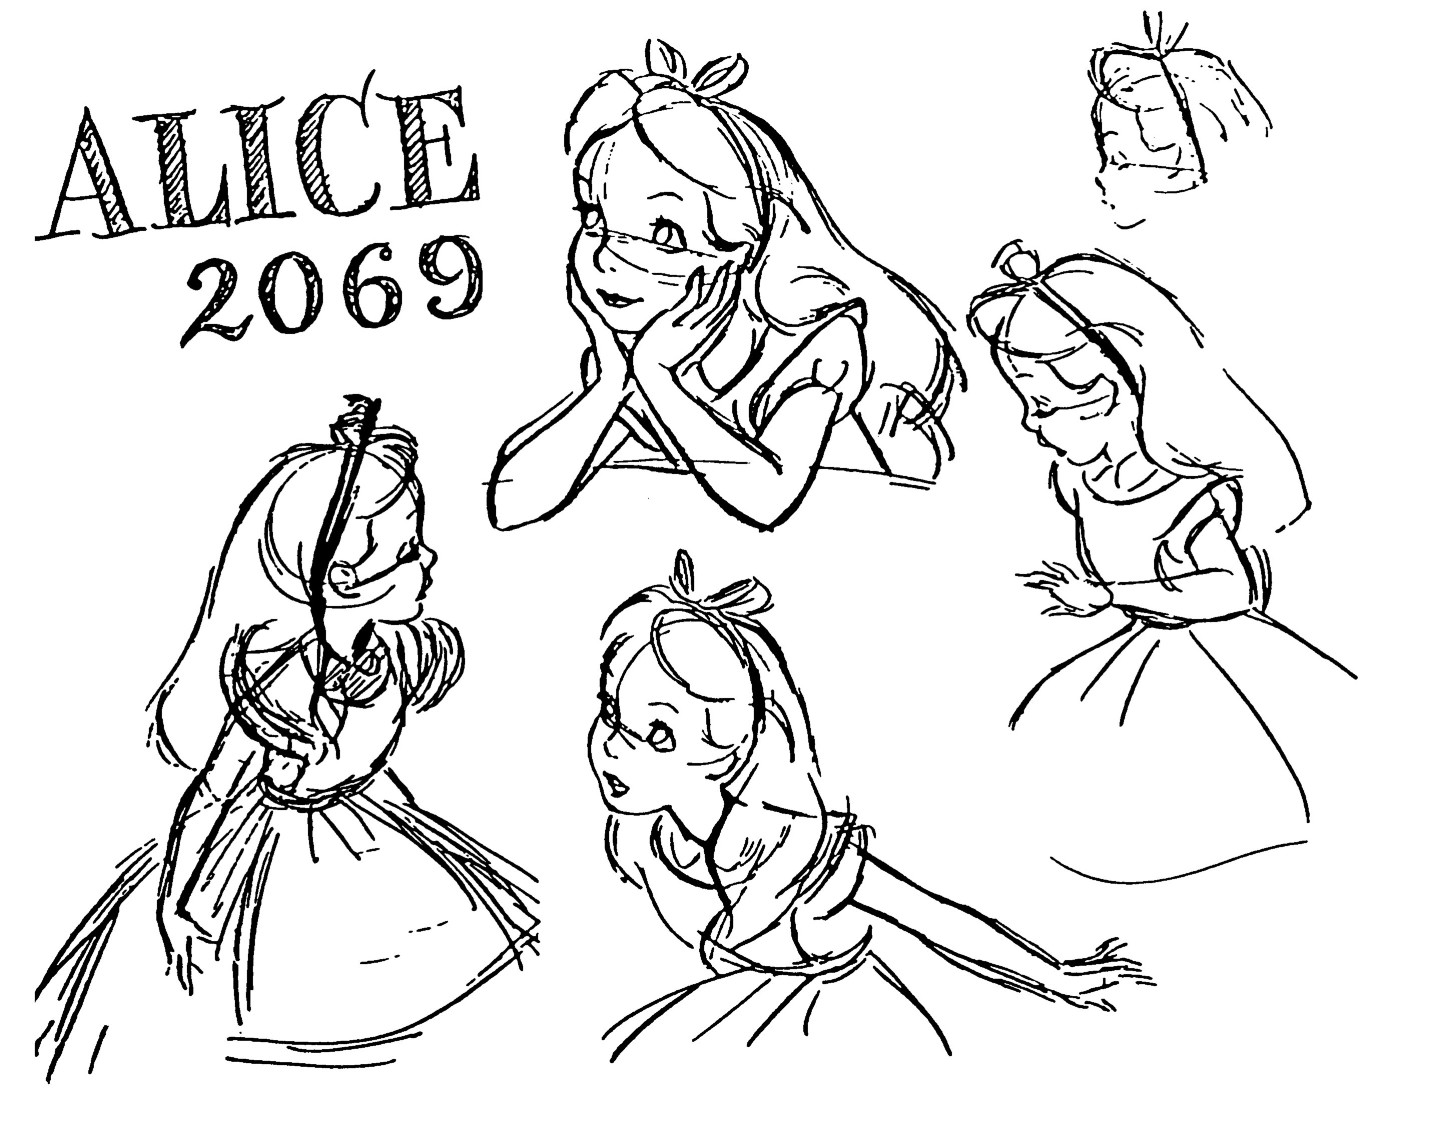 1430x1125 Alice05.jpg Alice, Animation And Artsy Fartsy